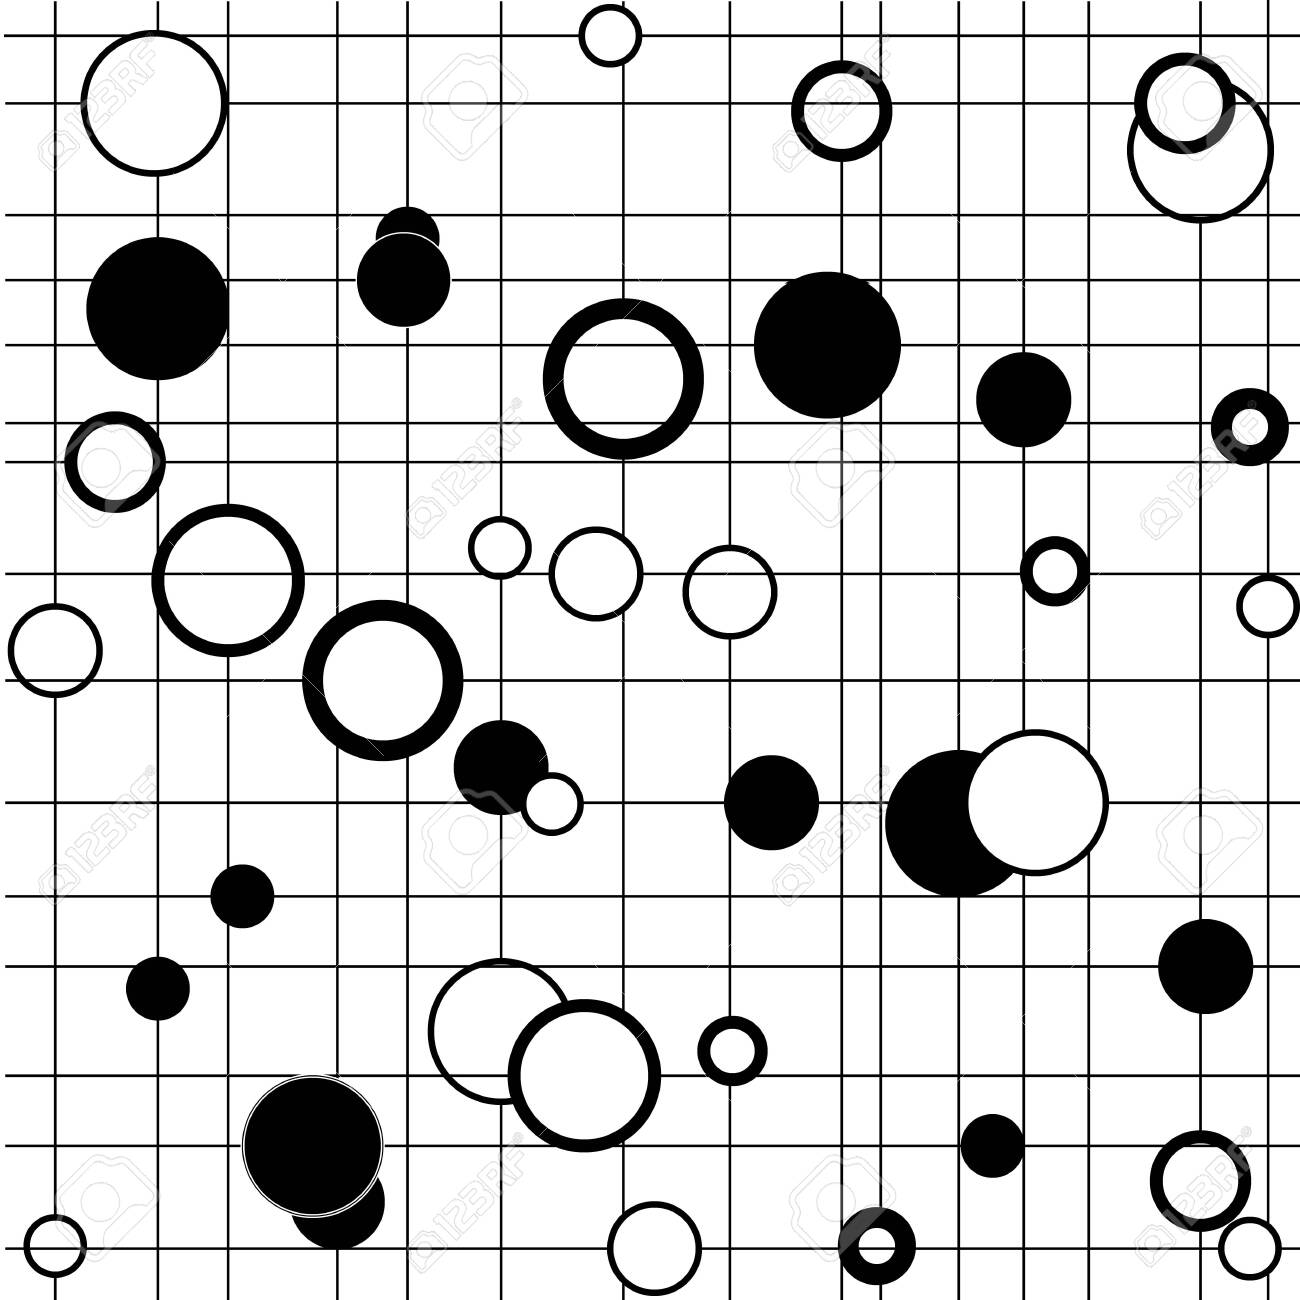 Star, circle on line seamless pattern. Fashion graphic background. Modern stylish abstract texture. Monochrome template for prints, textiles, wrapping, wallpaper. Design element. Vector illustration. - 150070368